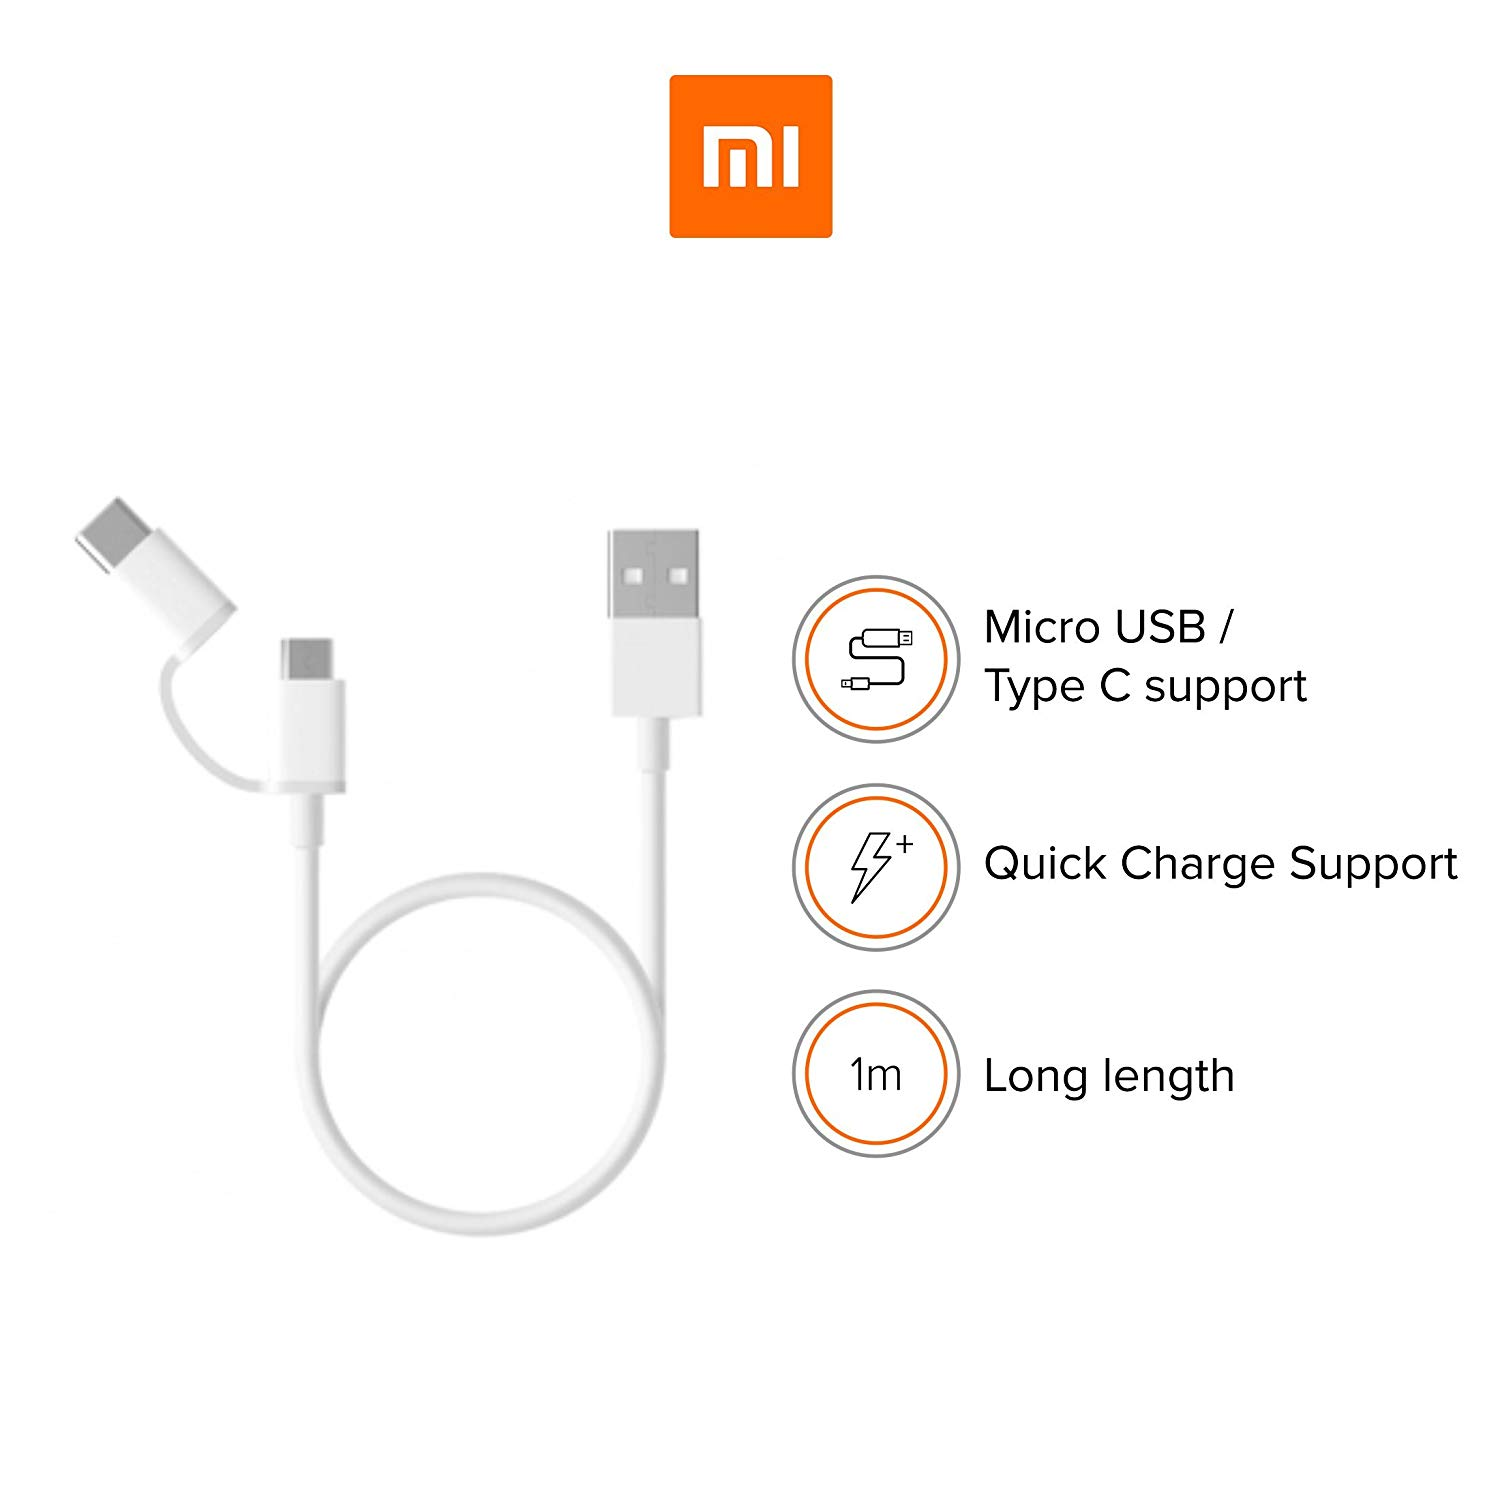 Xiaomi Mi 2-in-1 Charge & Data USB Cable 100cm για συσκευές με microUSB & Type-C θύρα